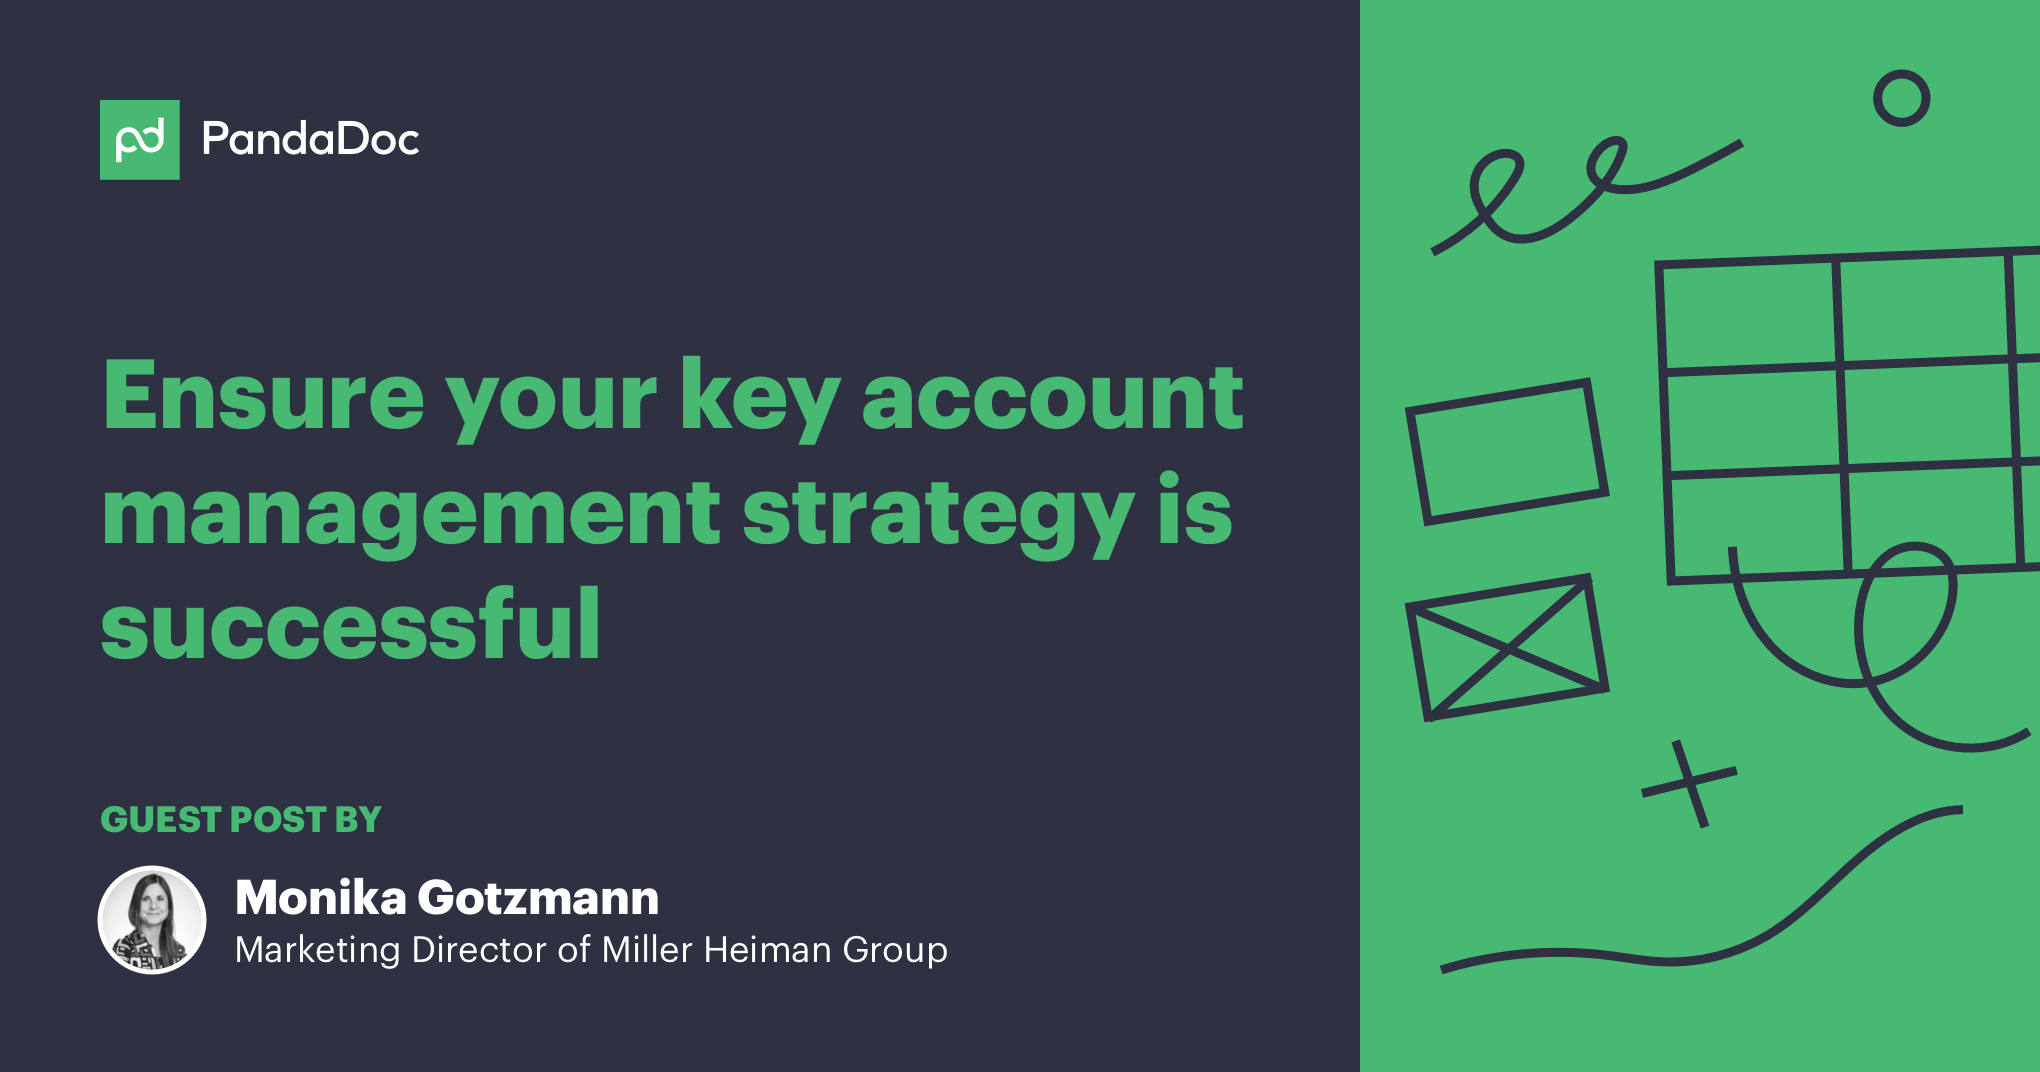 8 steps to ensure your key account management strategy is successful